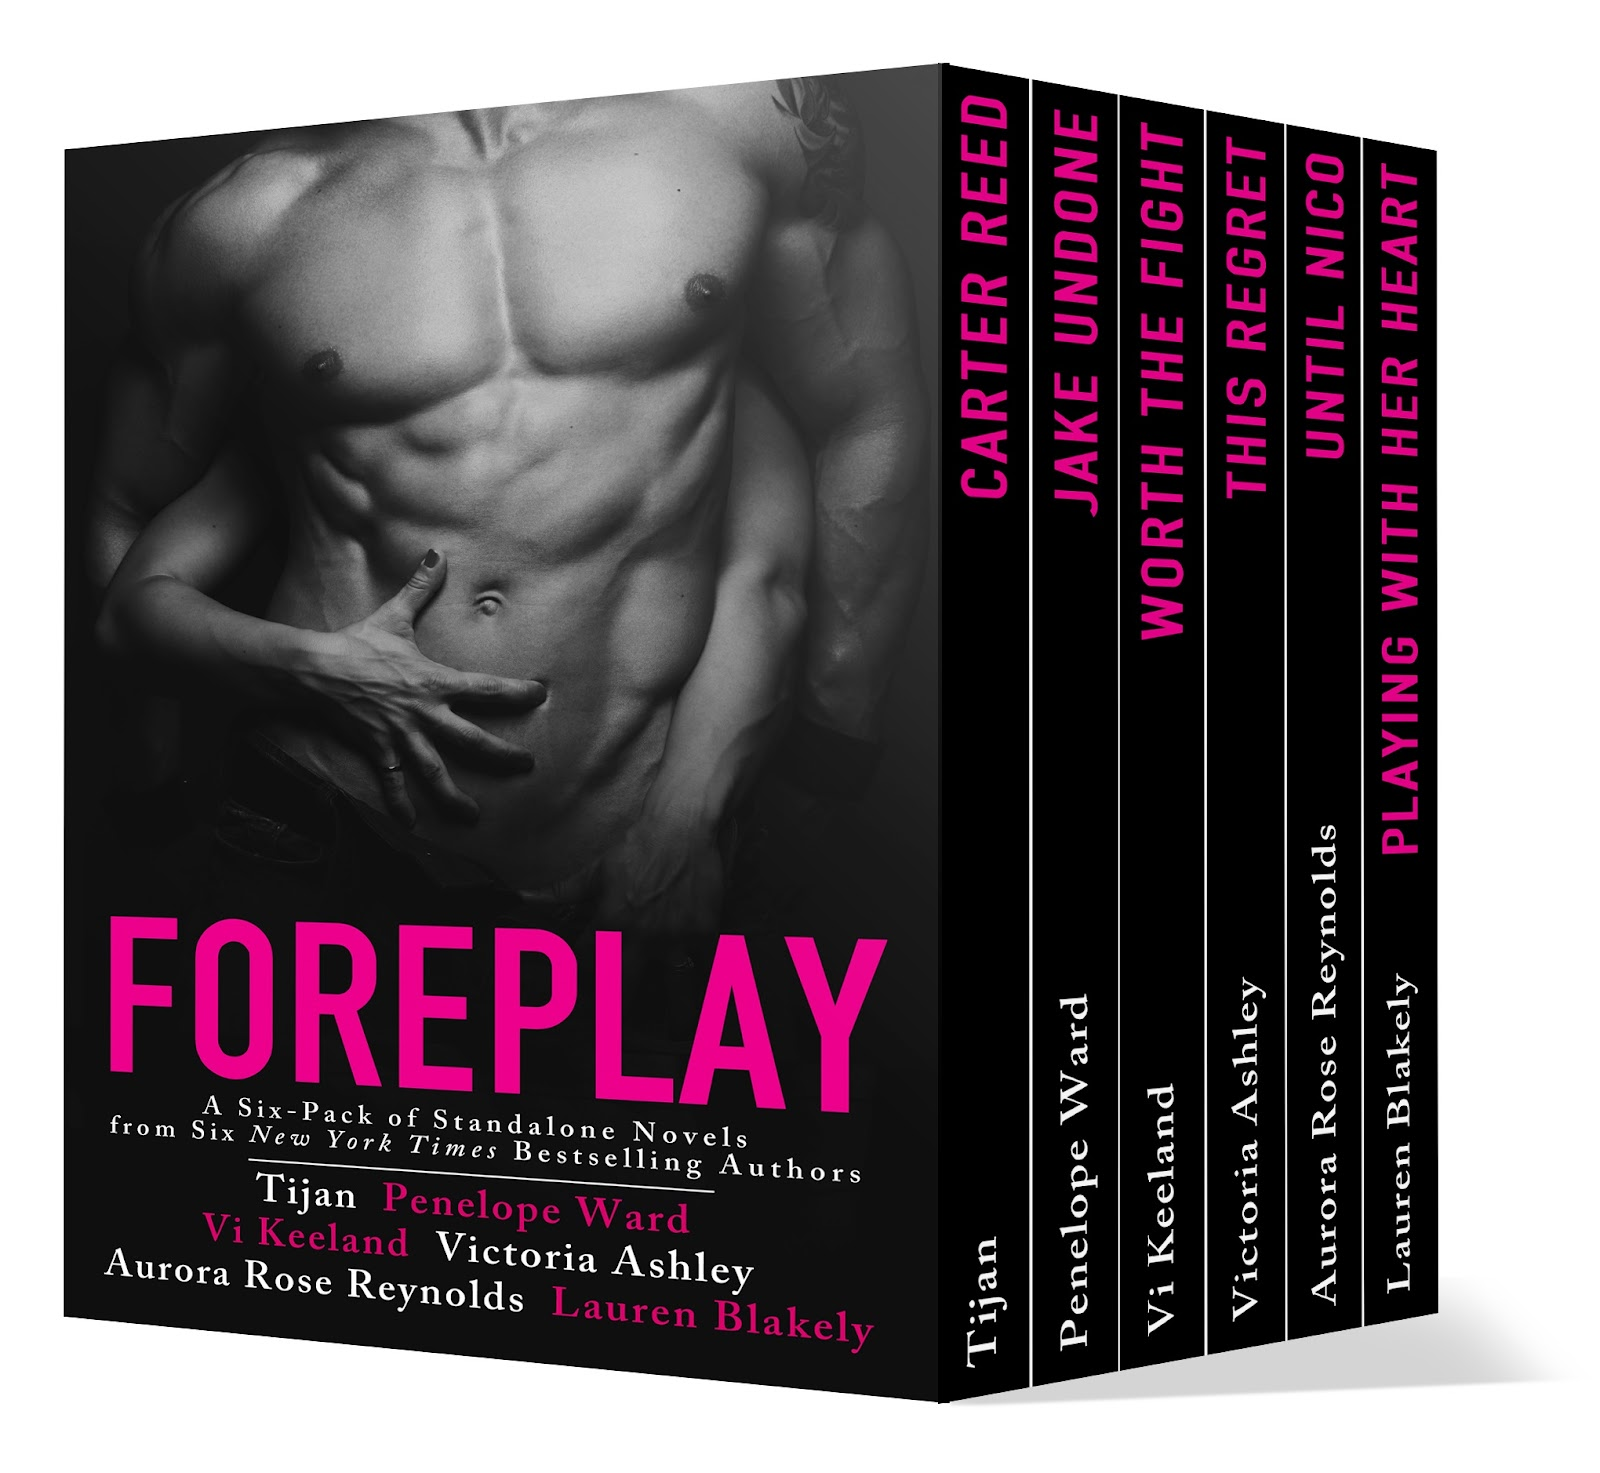 ForeplayBookCover3D-FINAL2.jpg